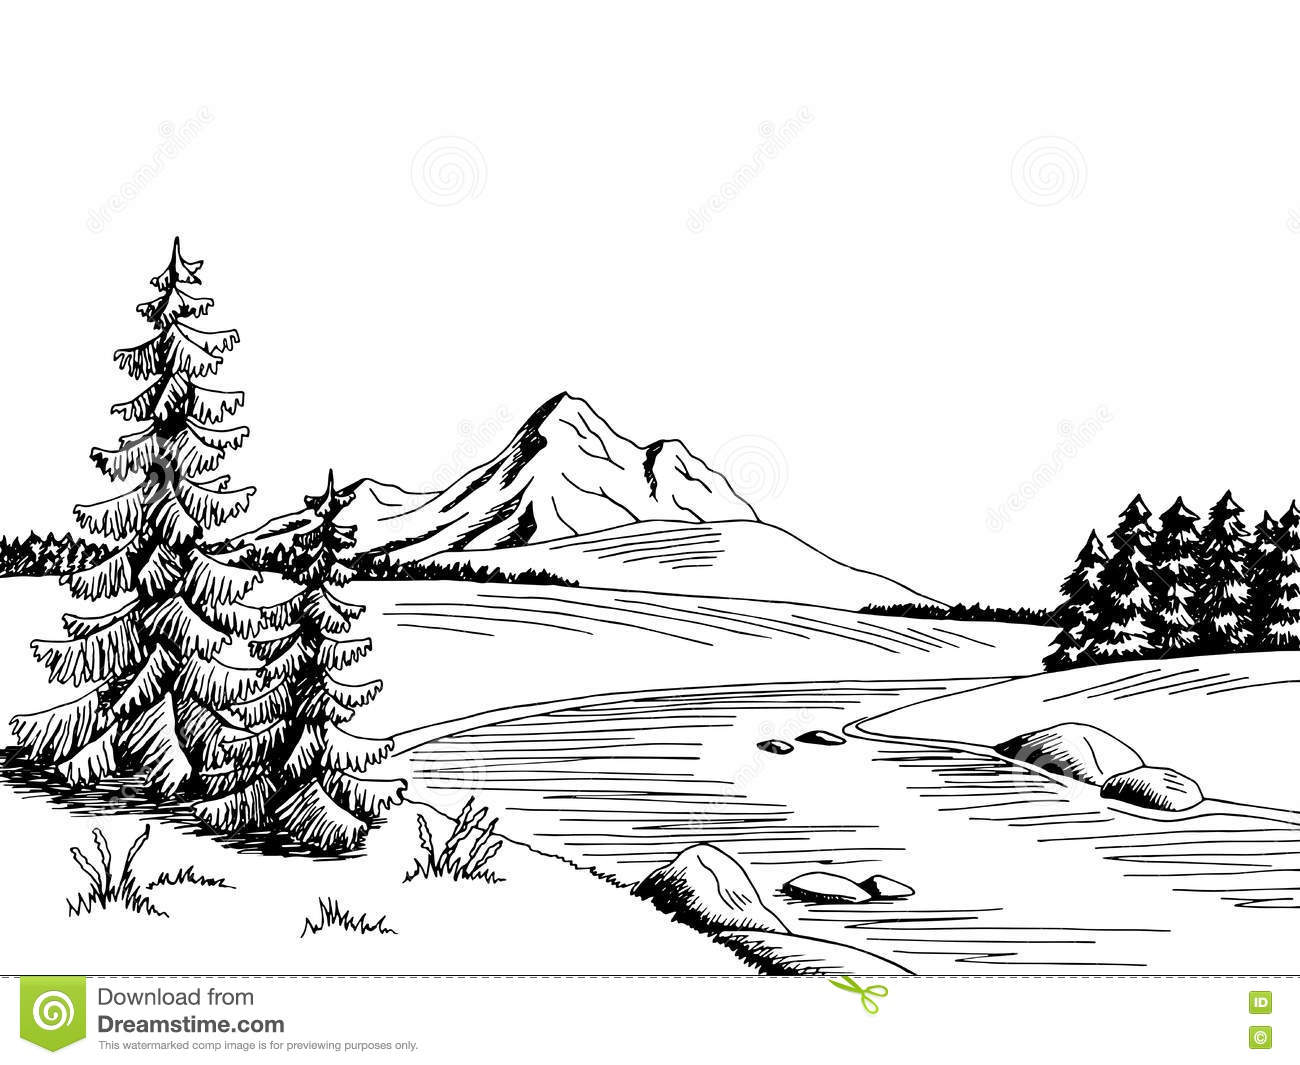 Black clipart scenery royalty free picture transparent download Mountain Sketches Clip Art at PaintingValley.com | Explore ... picture transparent download